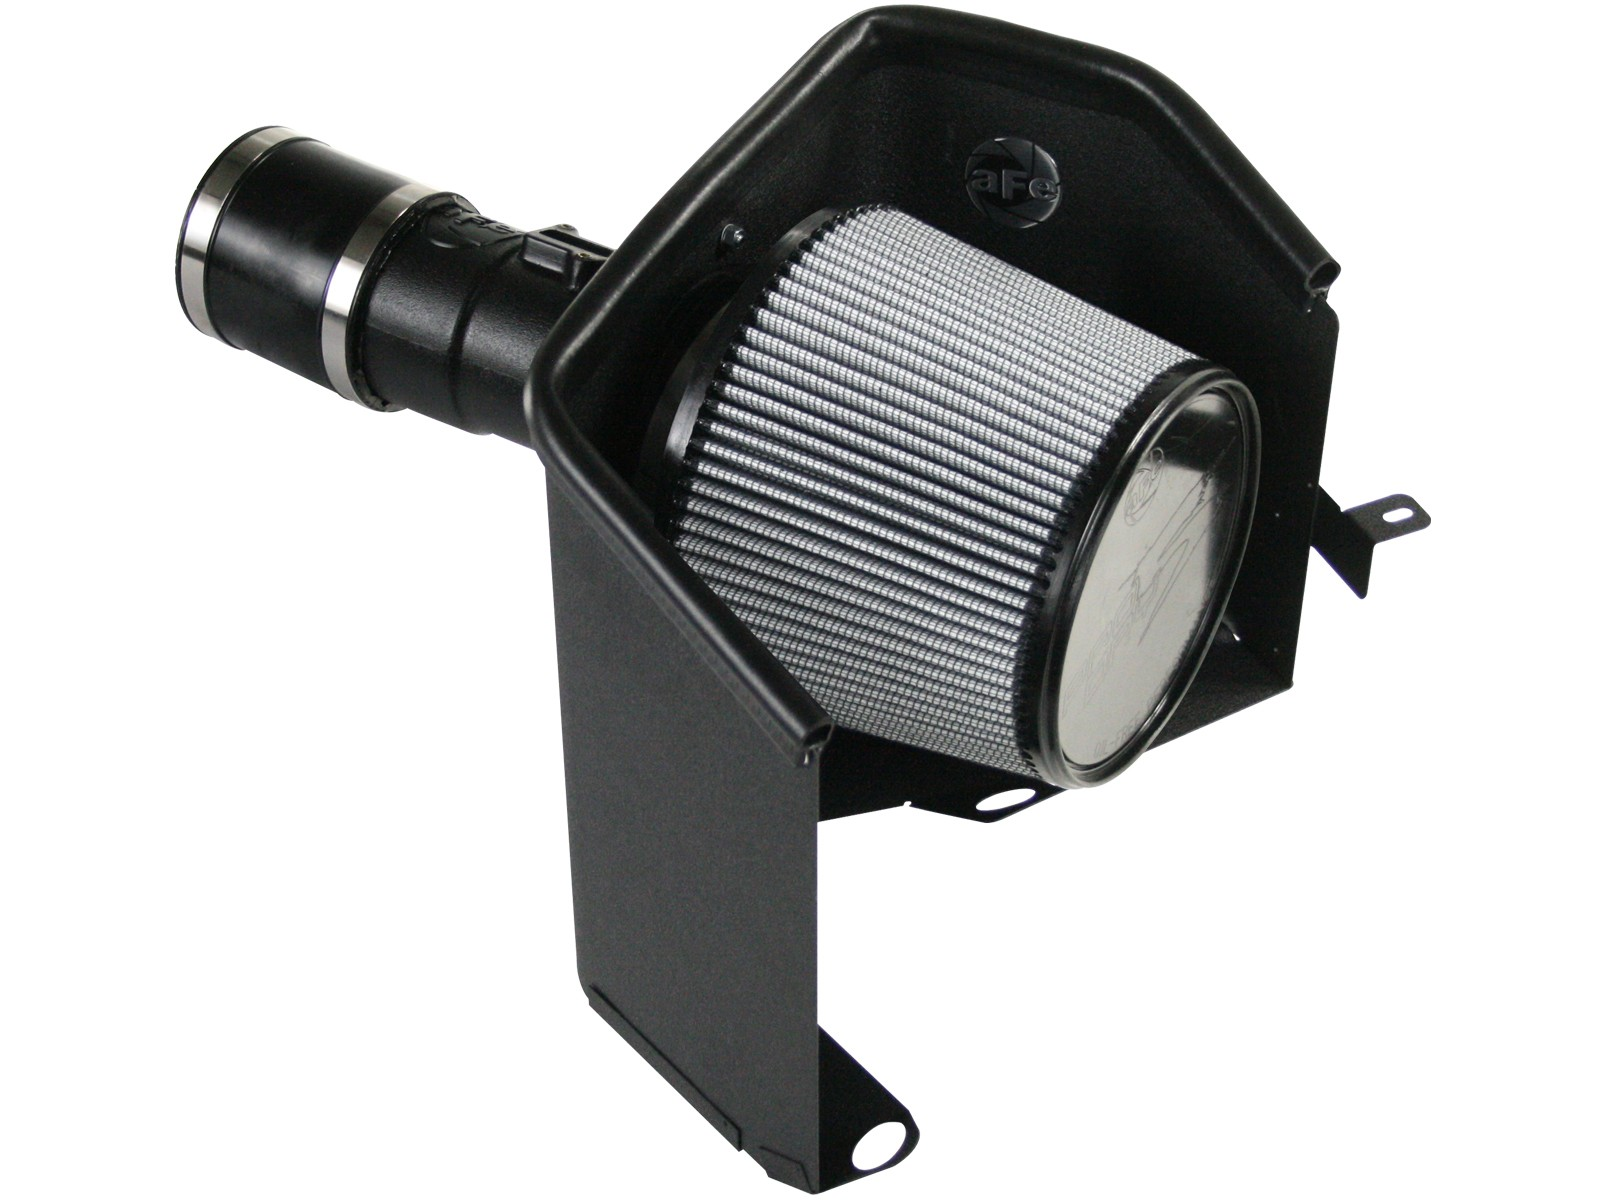 aFe POWER 51-10492 Magnum FORCE Stage-2 Pro DRY S Cold Air Intake System